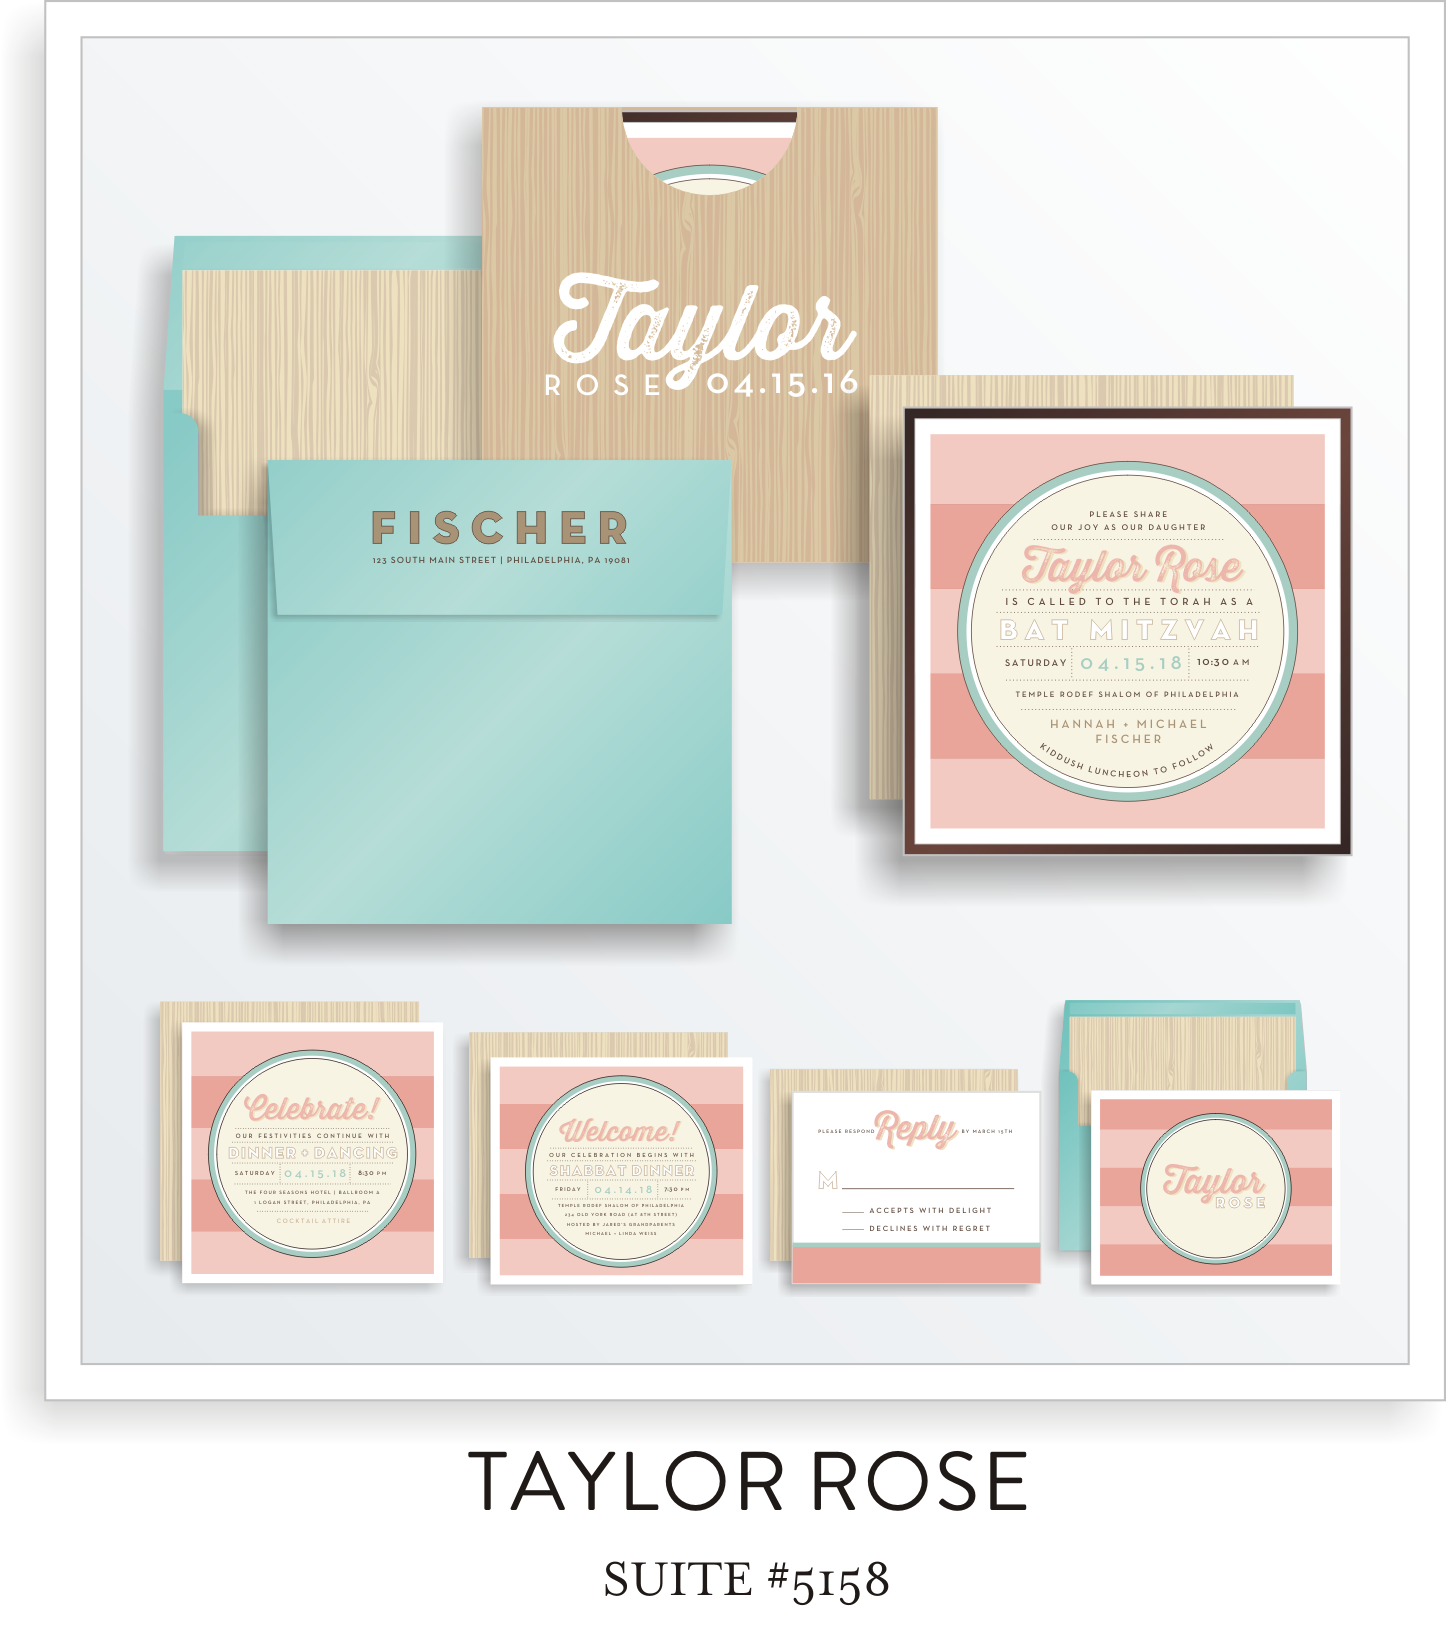 Copy of Bat Mitzvah Invitation Suite 5158 - Taylor Rose